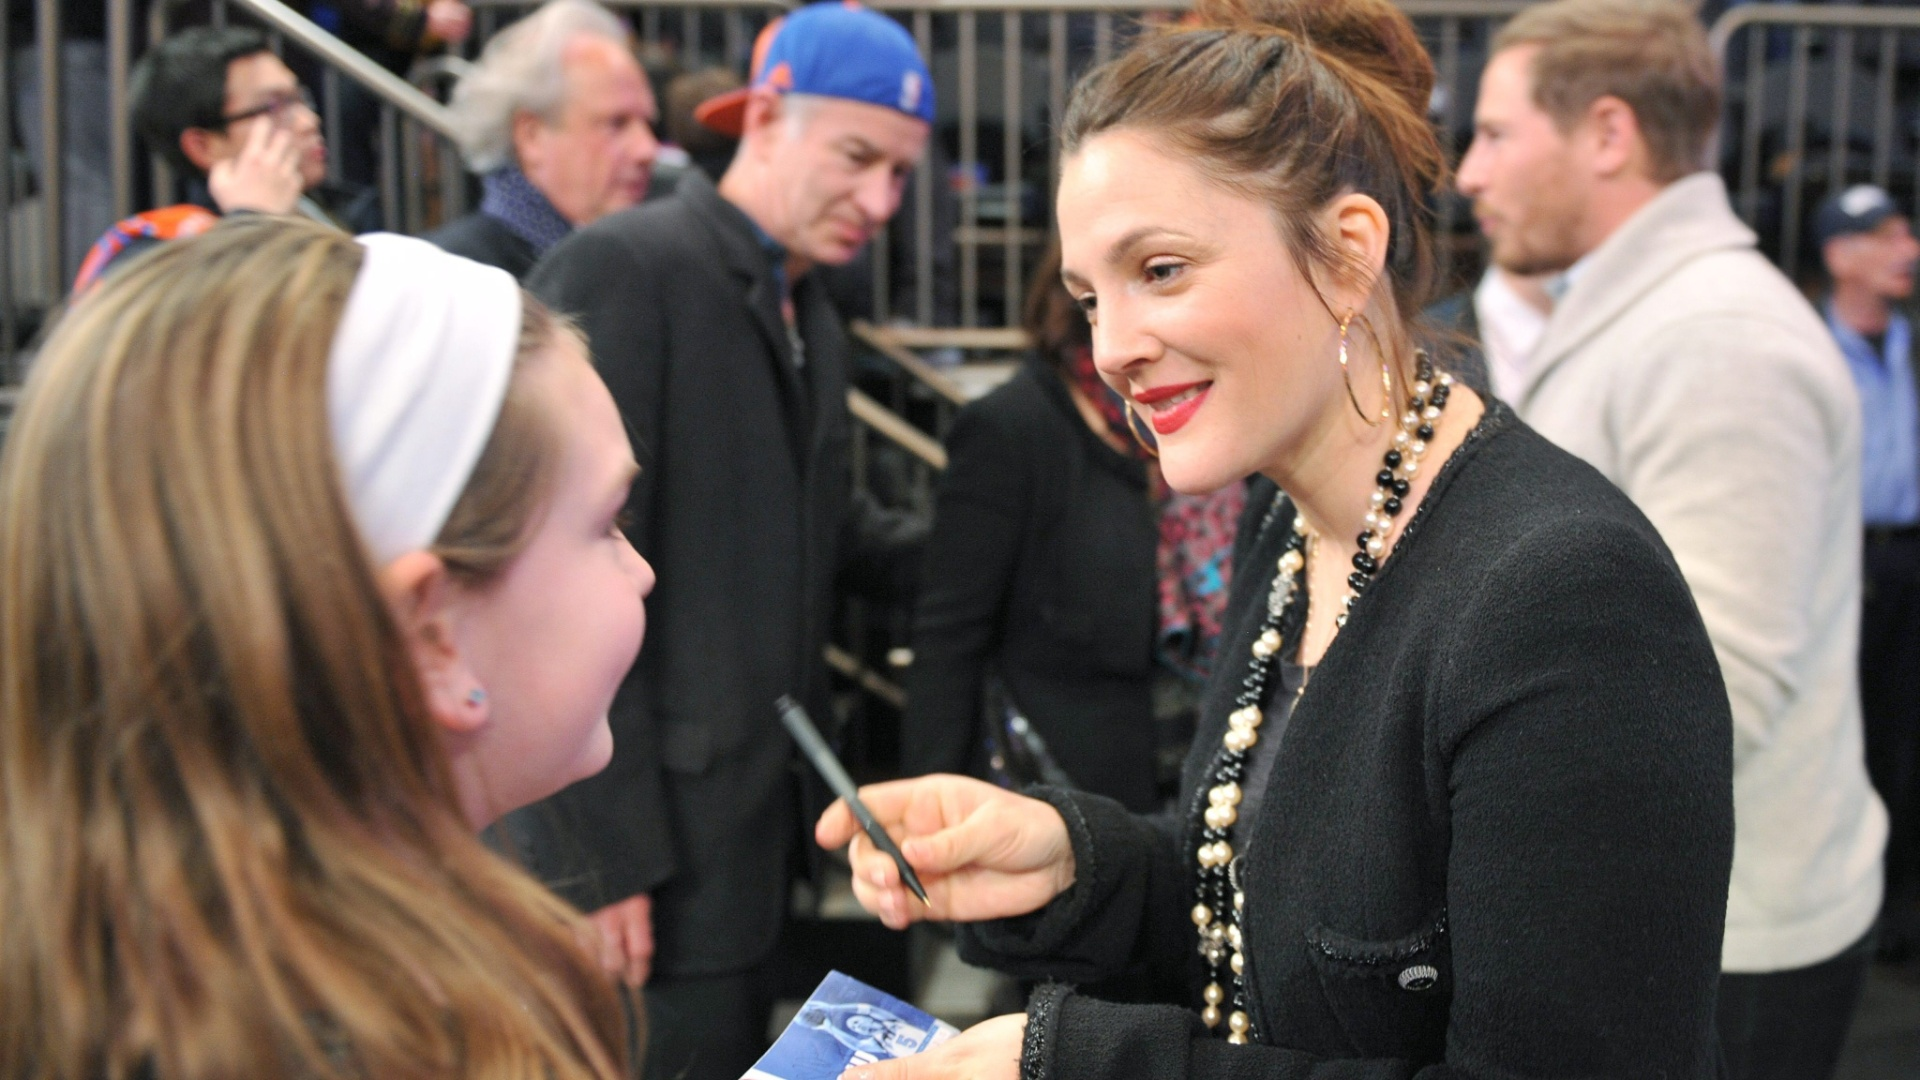 11.jan.2013 - Atriz Drew Barrymore distribui autógrafos no Madison Square Garden durante o jogo entre New York Knicks e Chicago Bulls